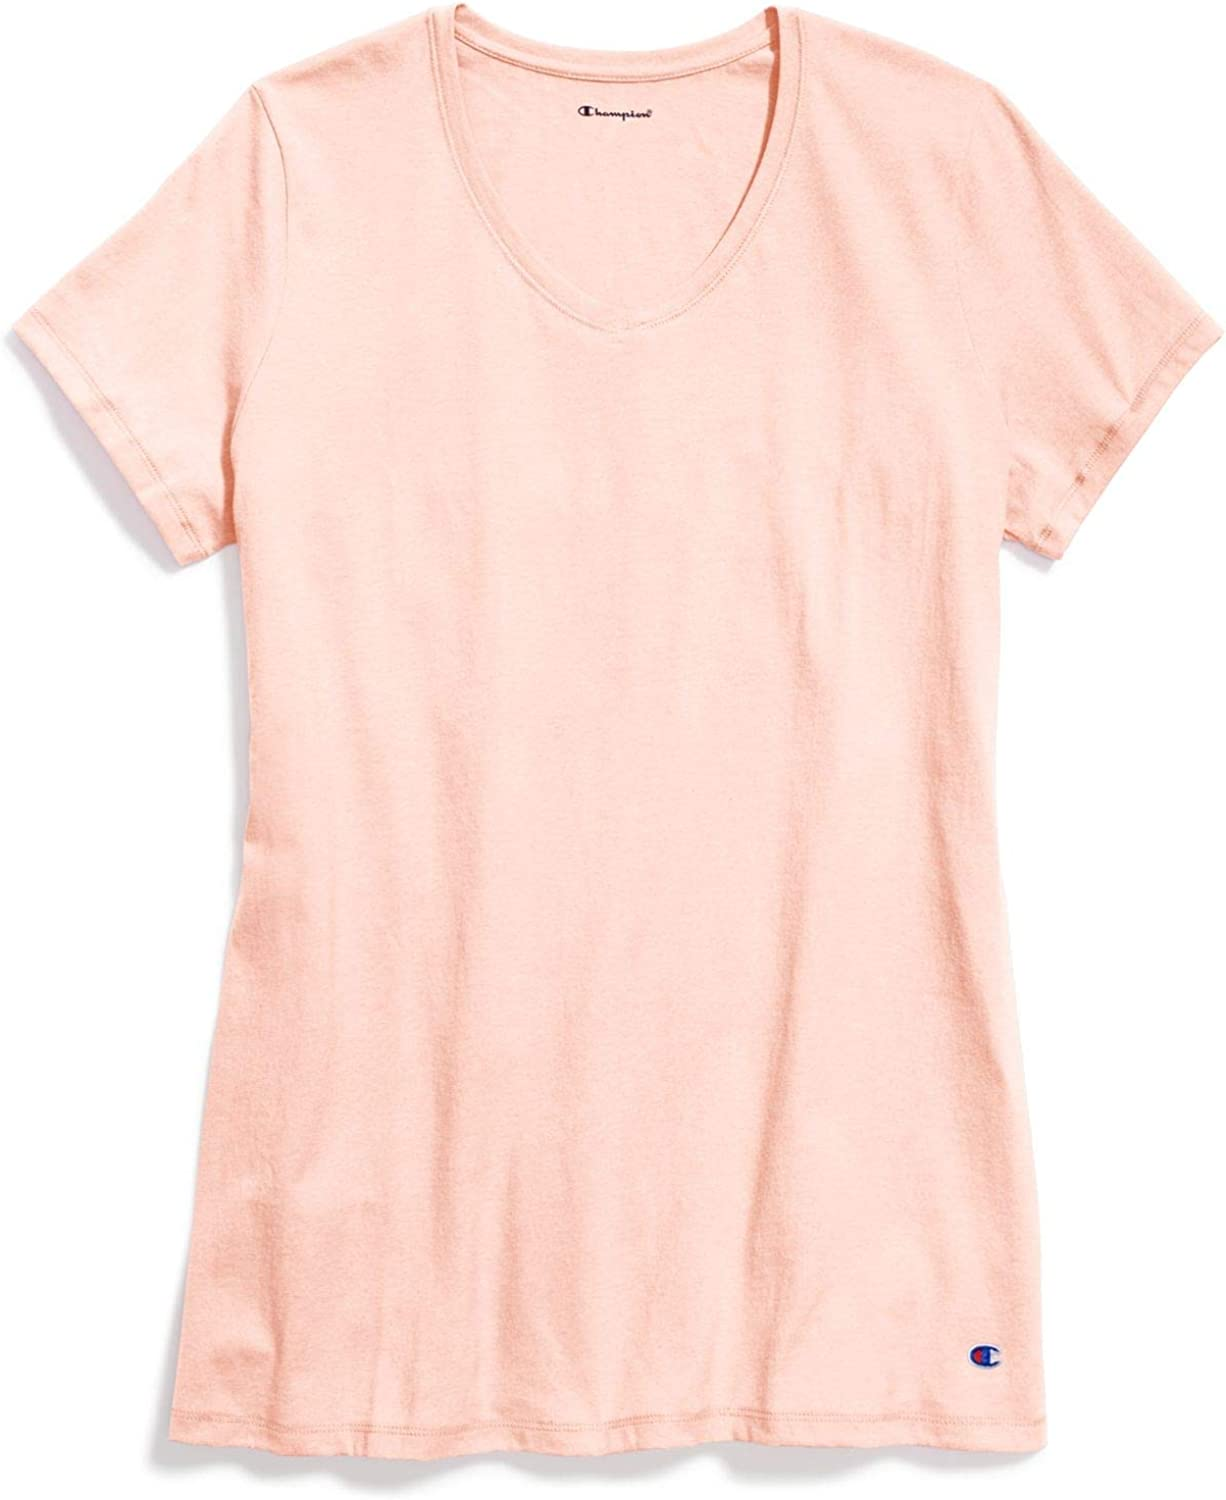 Champion Women's Jersey 5% OFF security V-Neck T-Shirt